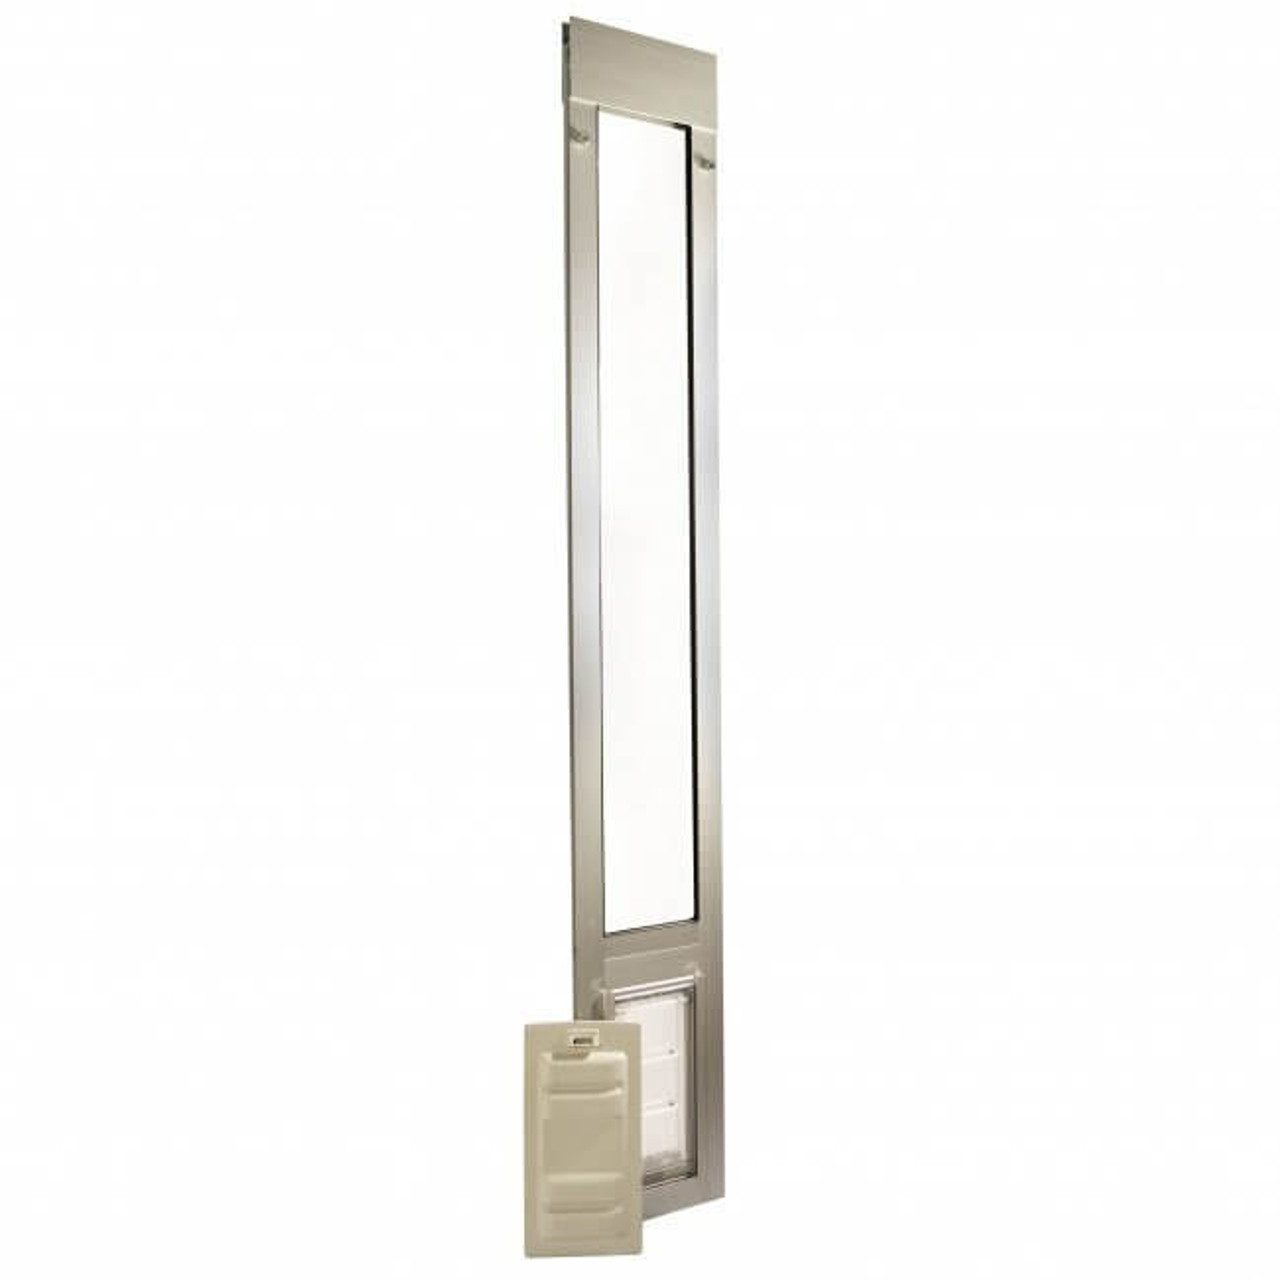 Thermo Panel 3e Endura Flap doggy door has a 3 inch spring loaded adjuster that makes installation quick and easy